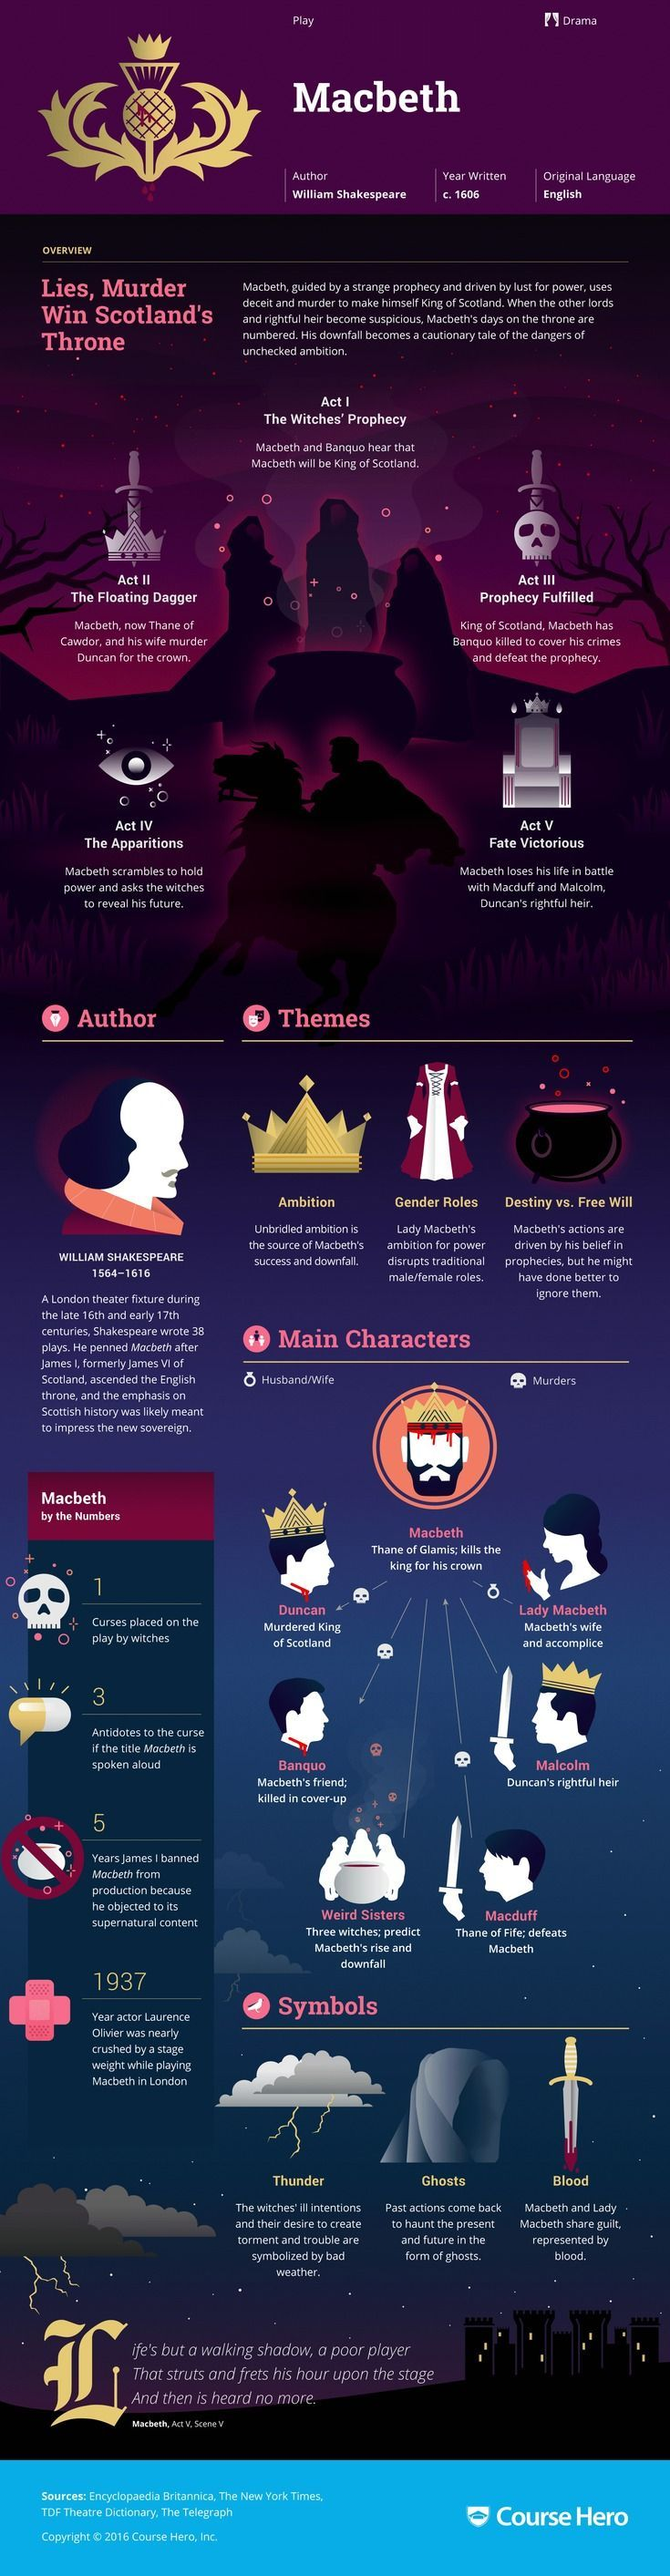 best macbeth play ideas the tragedy of macbeth a macbeth essay will most likely be a part of your studies if you are studying literature shakespeare s tragedies present a fertile ground for topic ideas